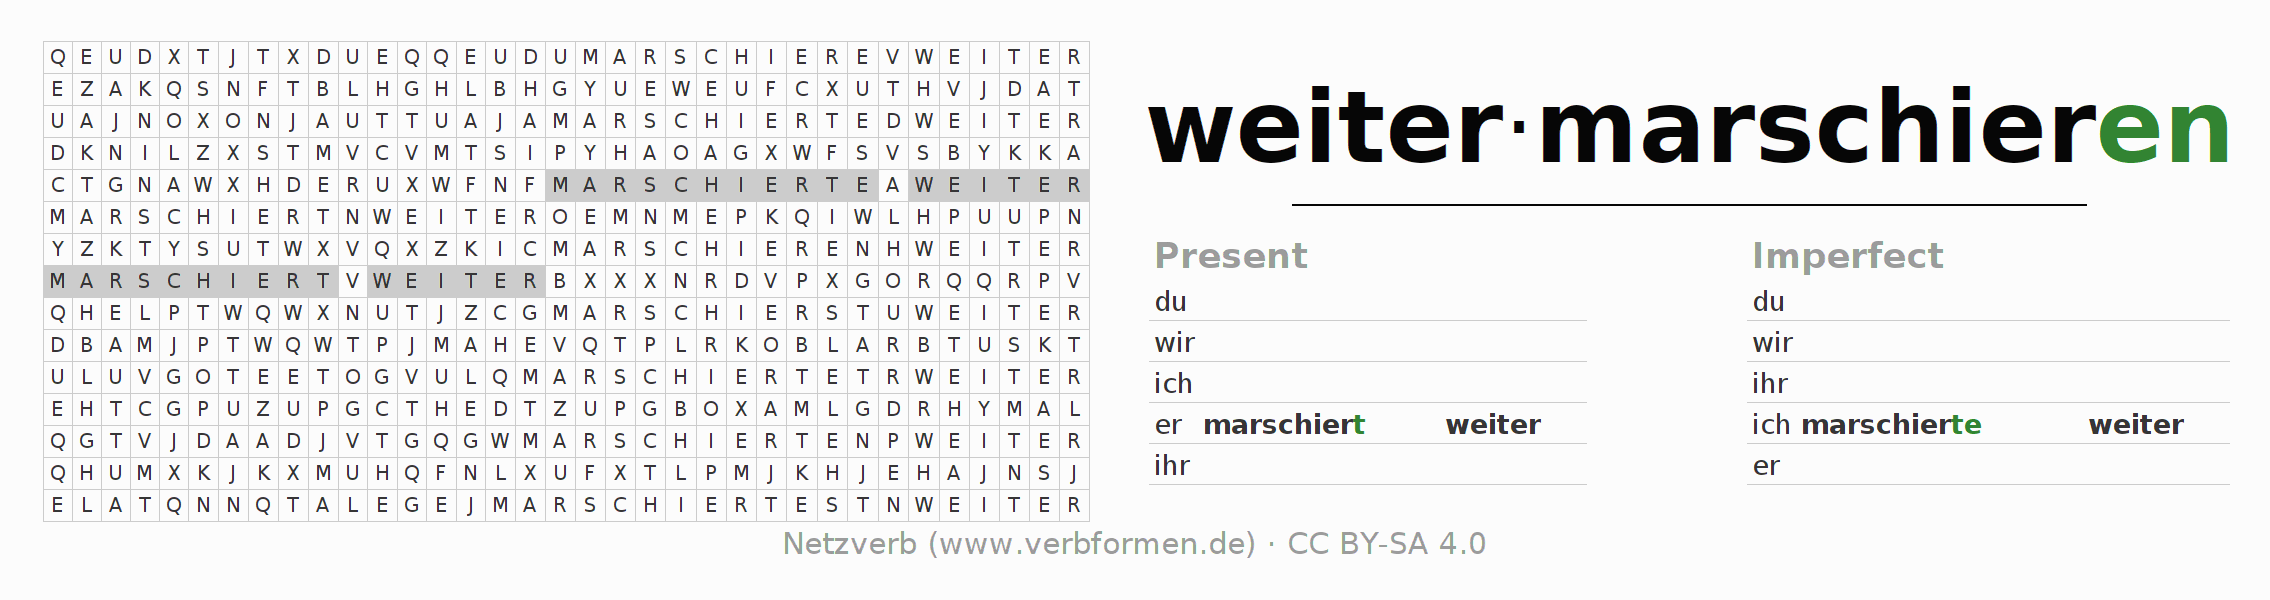 Word search puzzle for the conjugation of the verb weitermarschieren